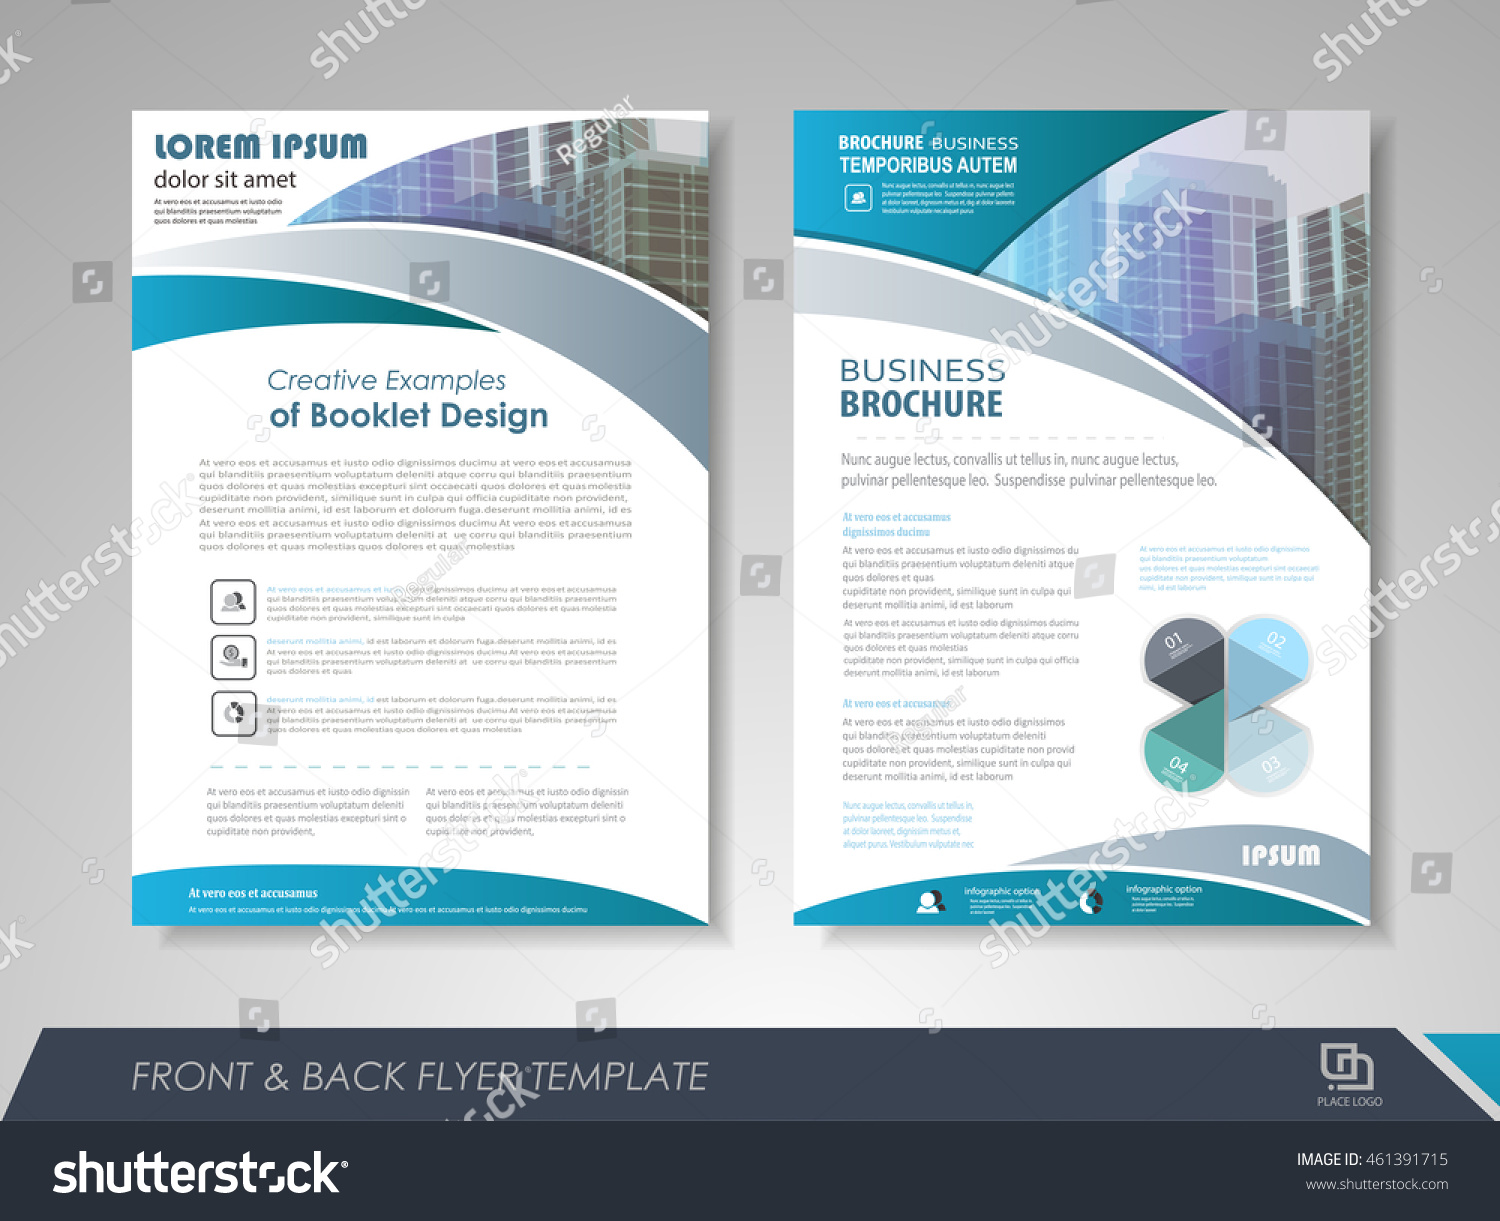 front and back page brochure template flyer design leaflet cover flyer design leaflet cover for business presentations preview save to a lightbox